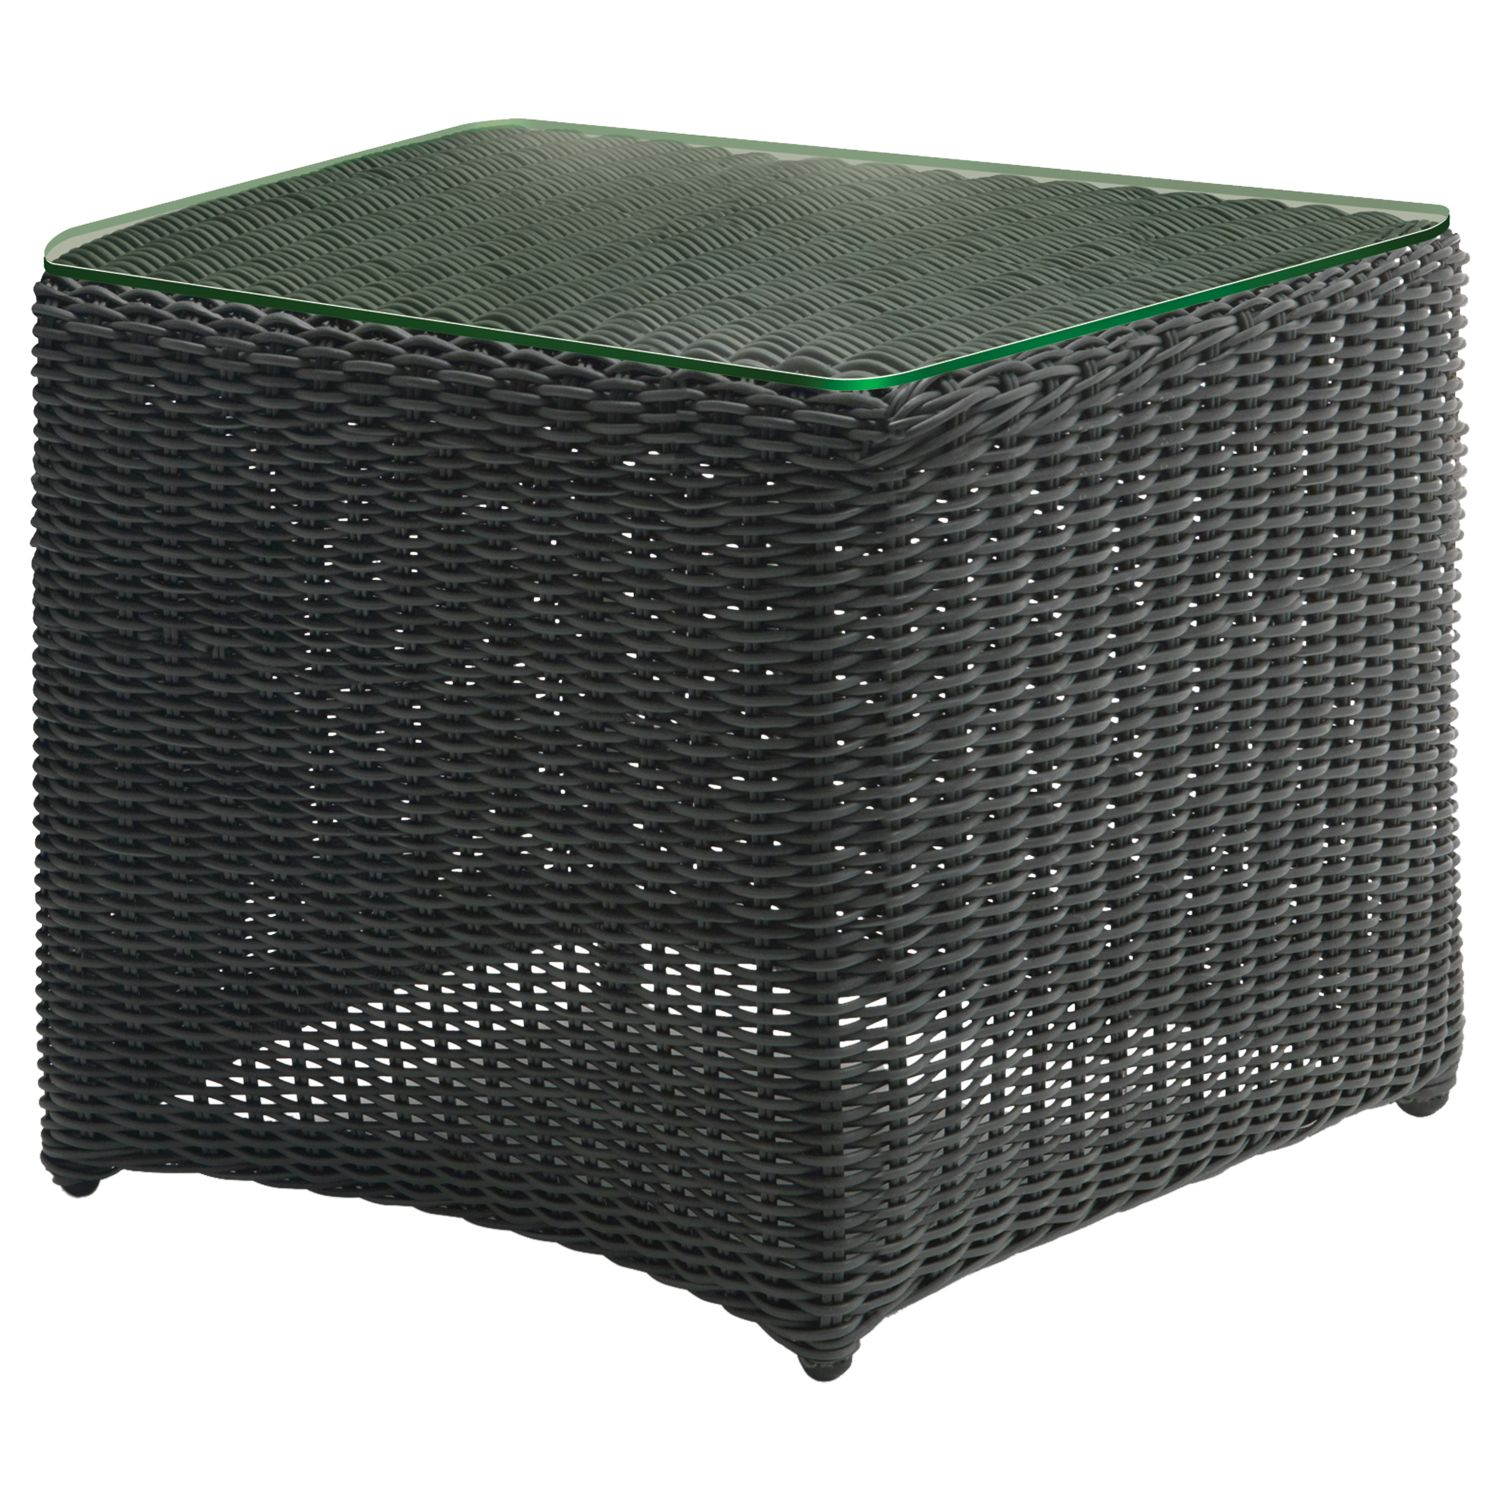 Kettler Weave Side Table, Rattan